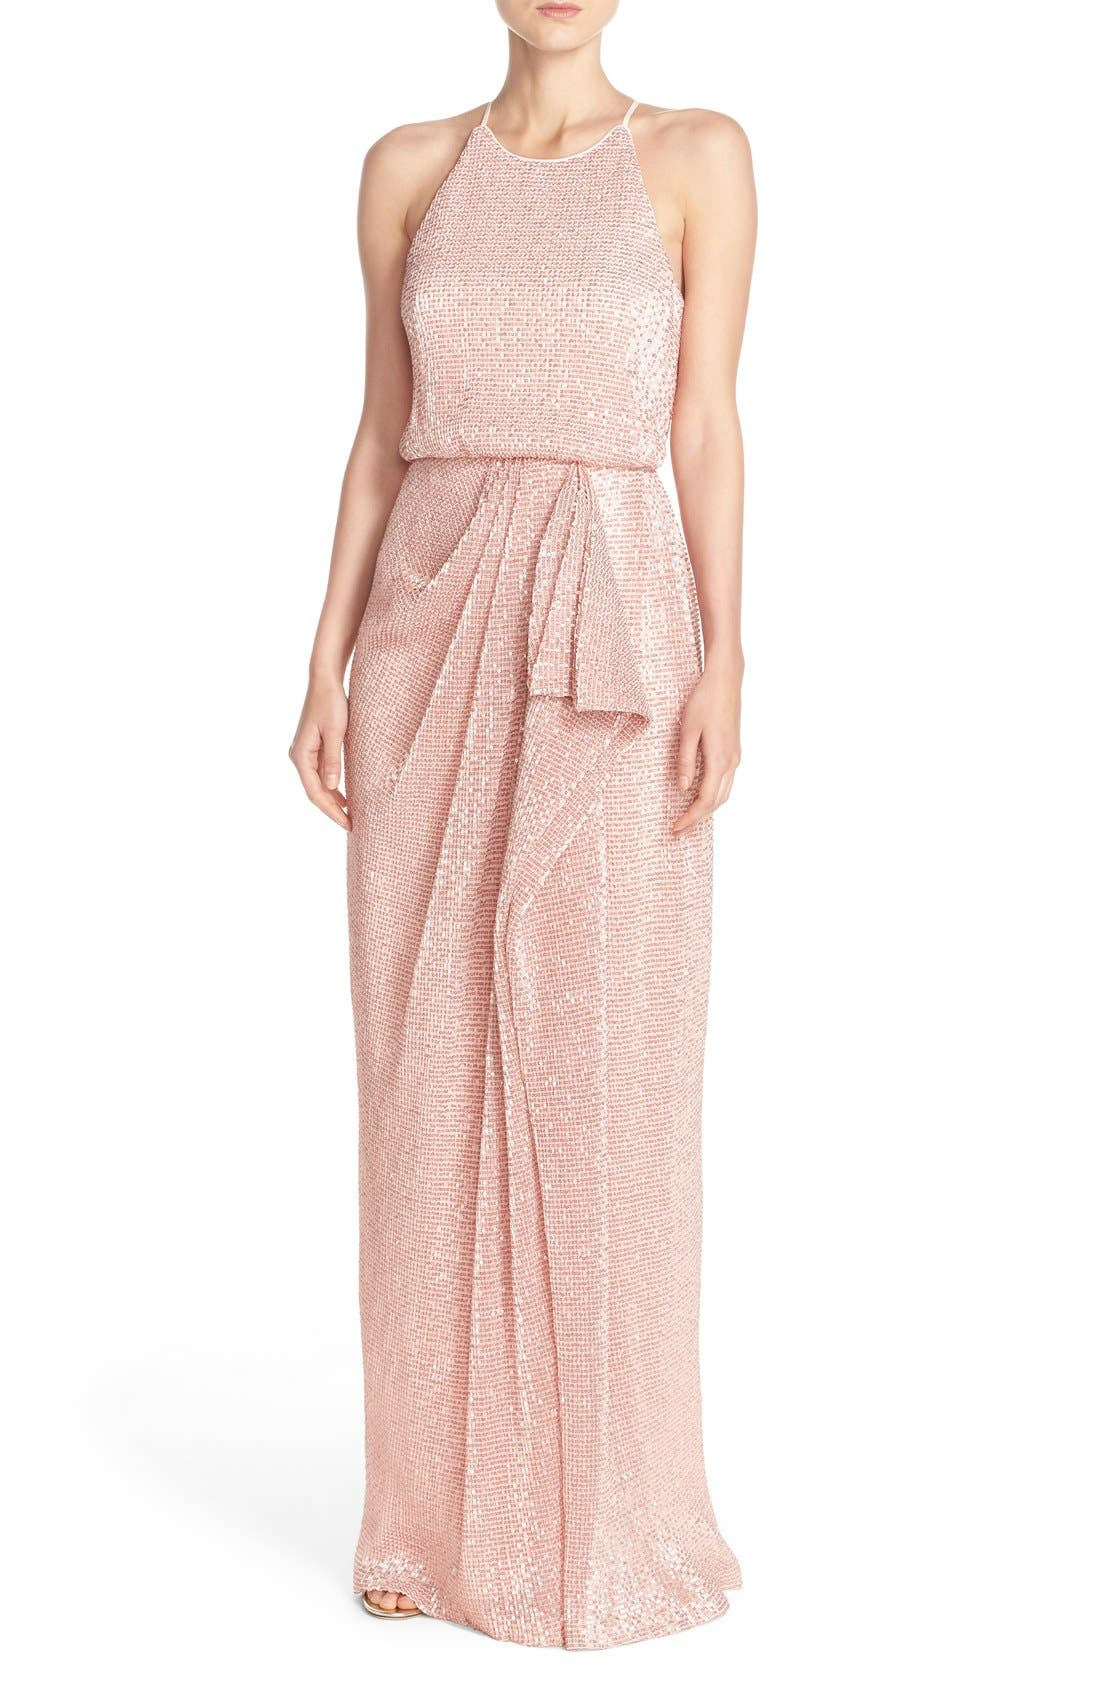 Main Image - Badgley Mischka Sequin Mesh Blouson Gown